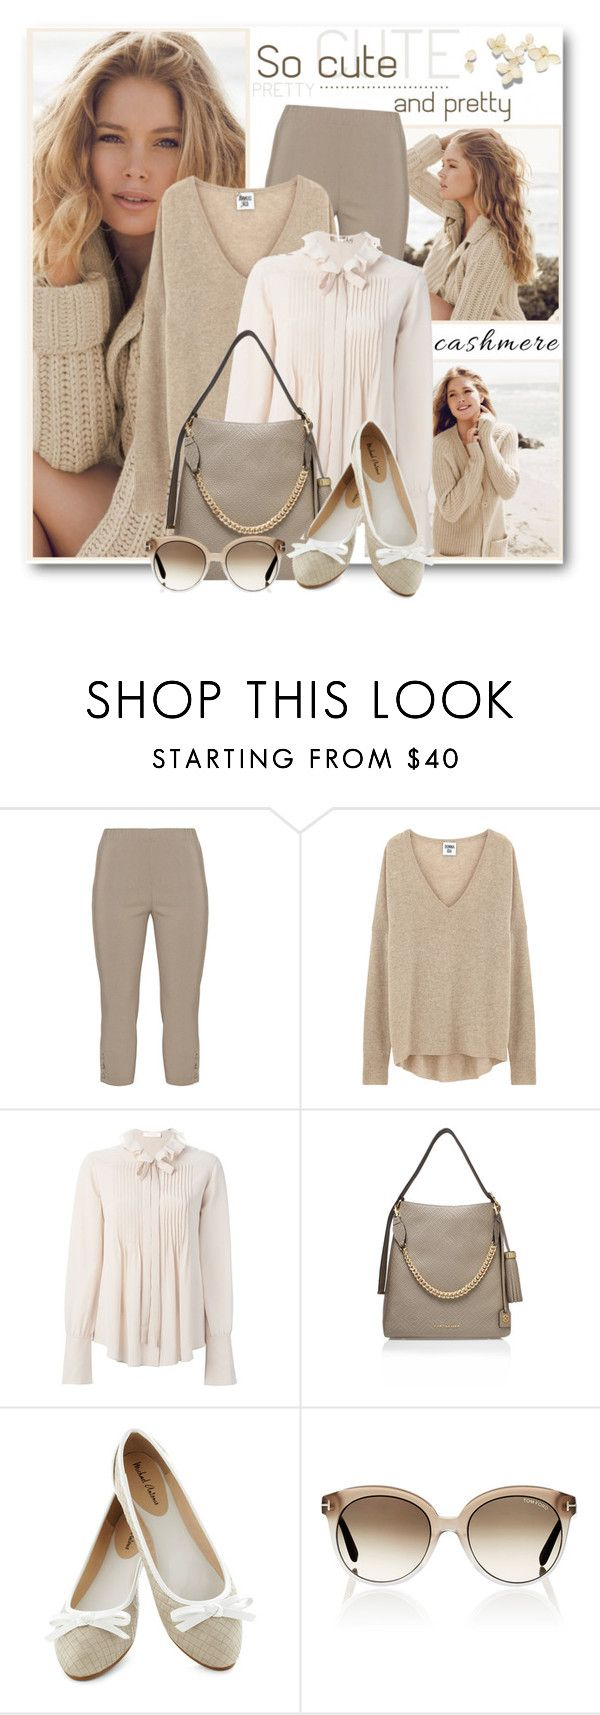 """Cashmere Sweater"" by brendariley-1 ❤ liked on Polyvore featuring Repeat Cashmere, Twister, Chloé, Kurt Geiger, Tom Ford and cashmere"